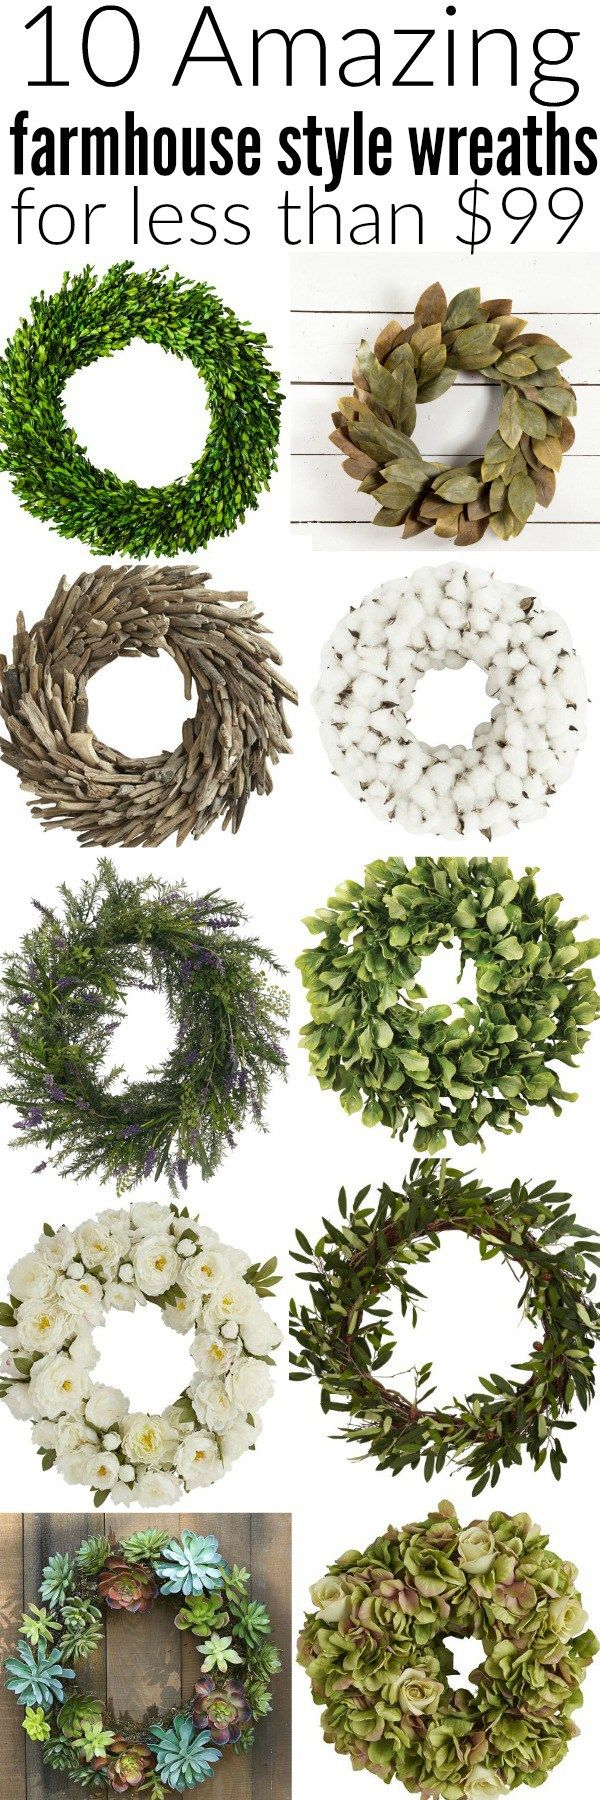 For the Home: 10 Amazing Farmhouse Style Wreaths